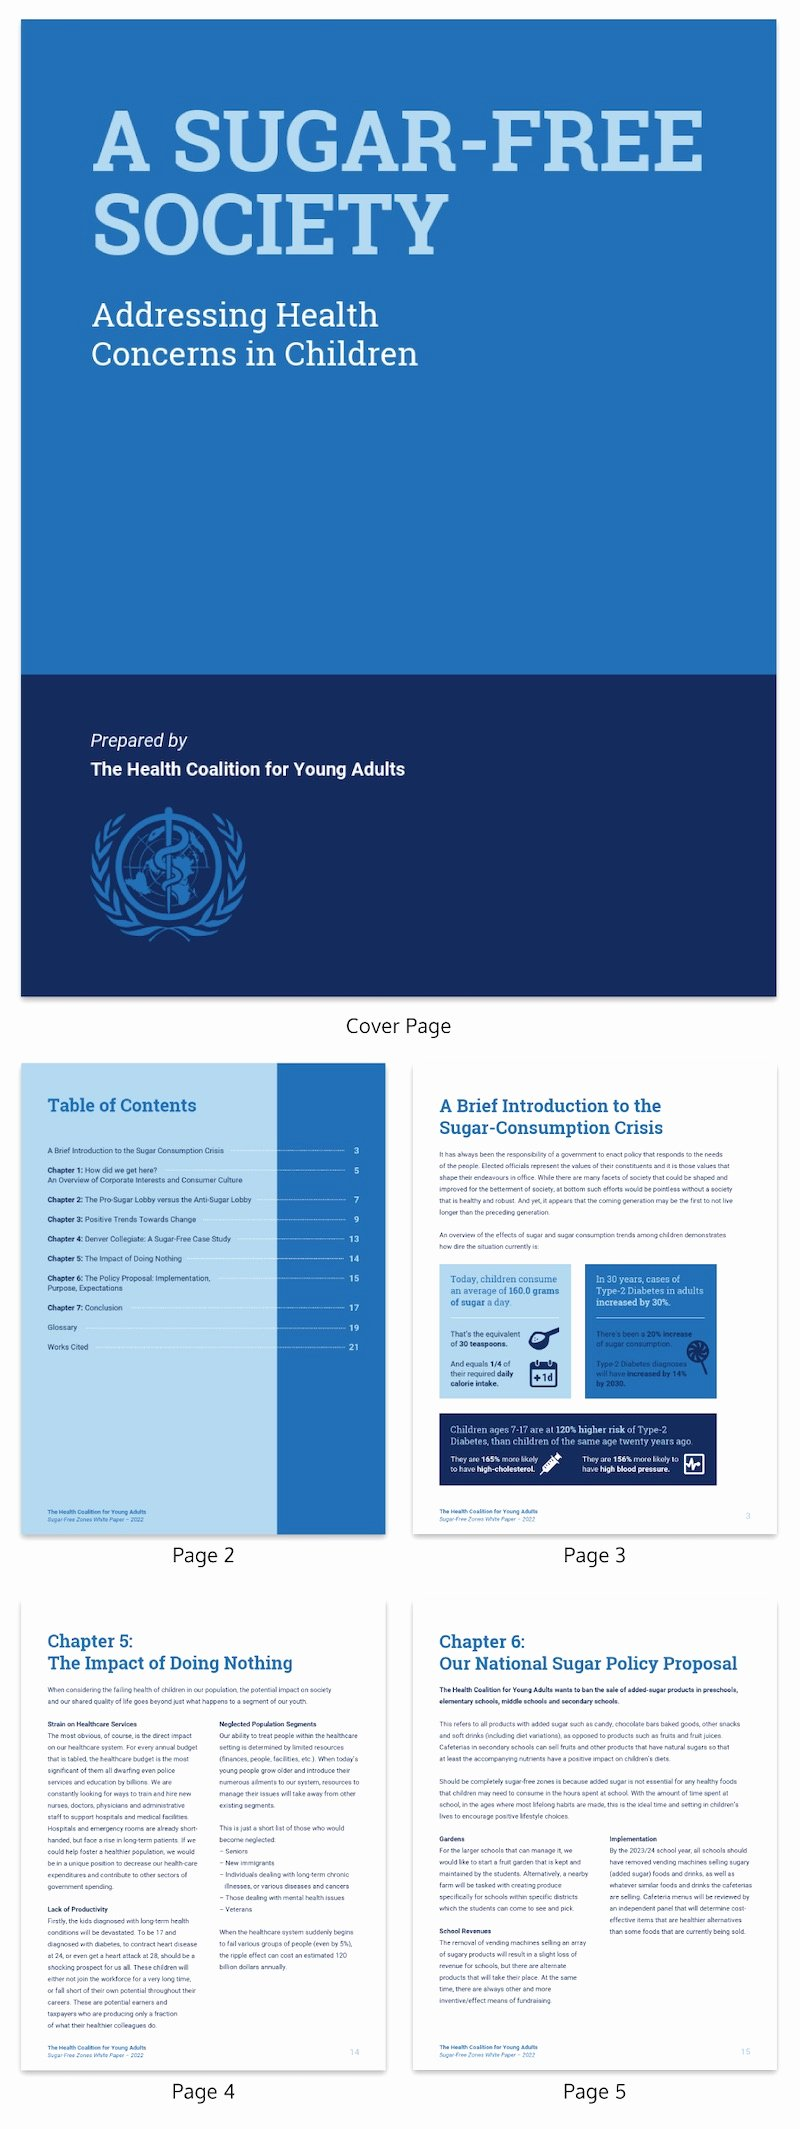 Findings Report Template Elegant 30 Business Report Templates that Every Business Needs